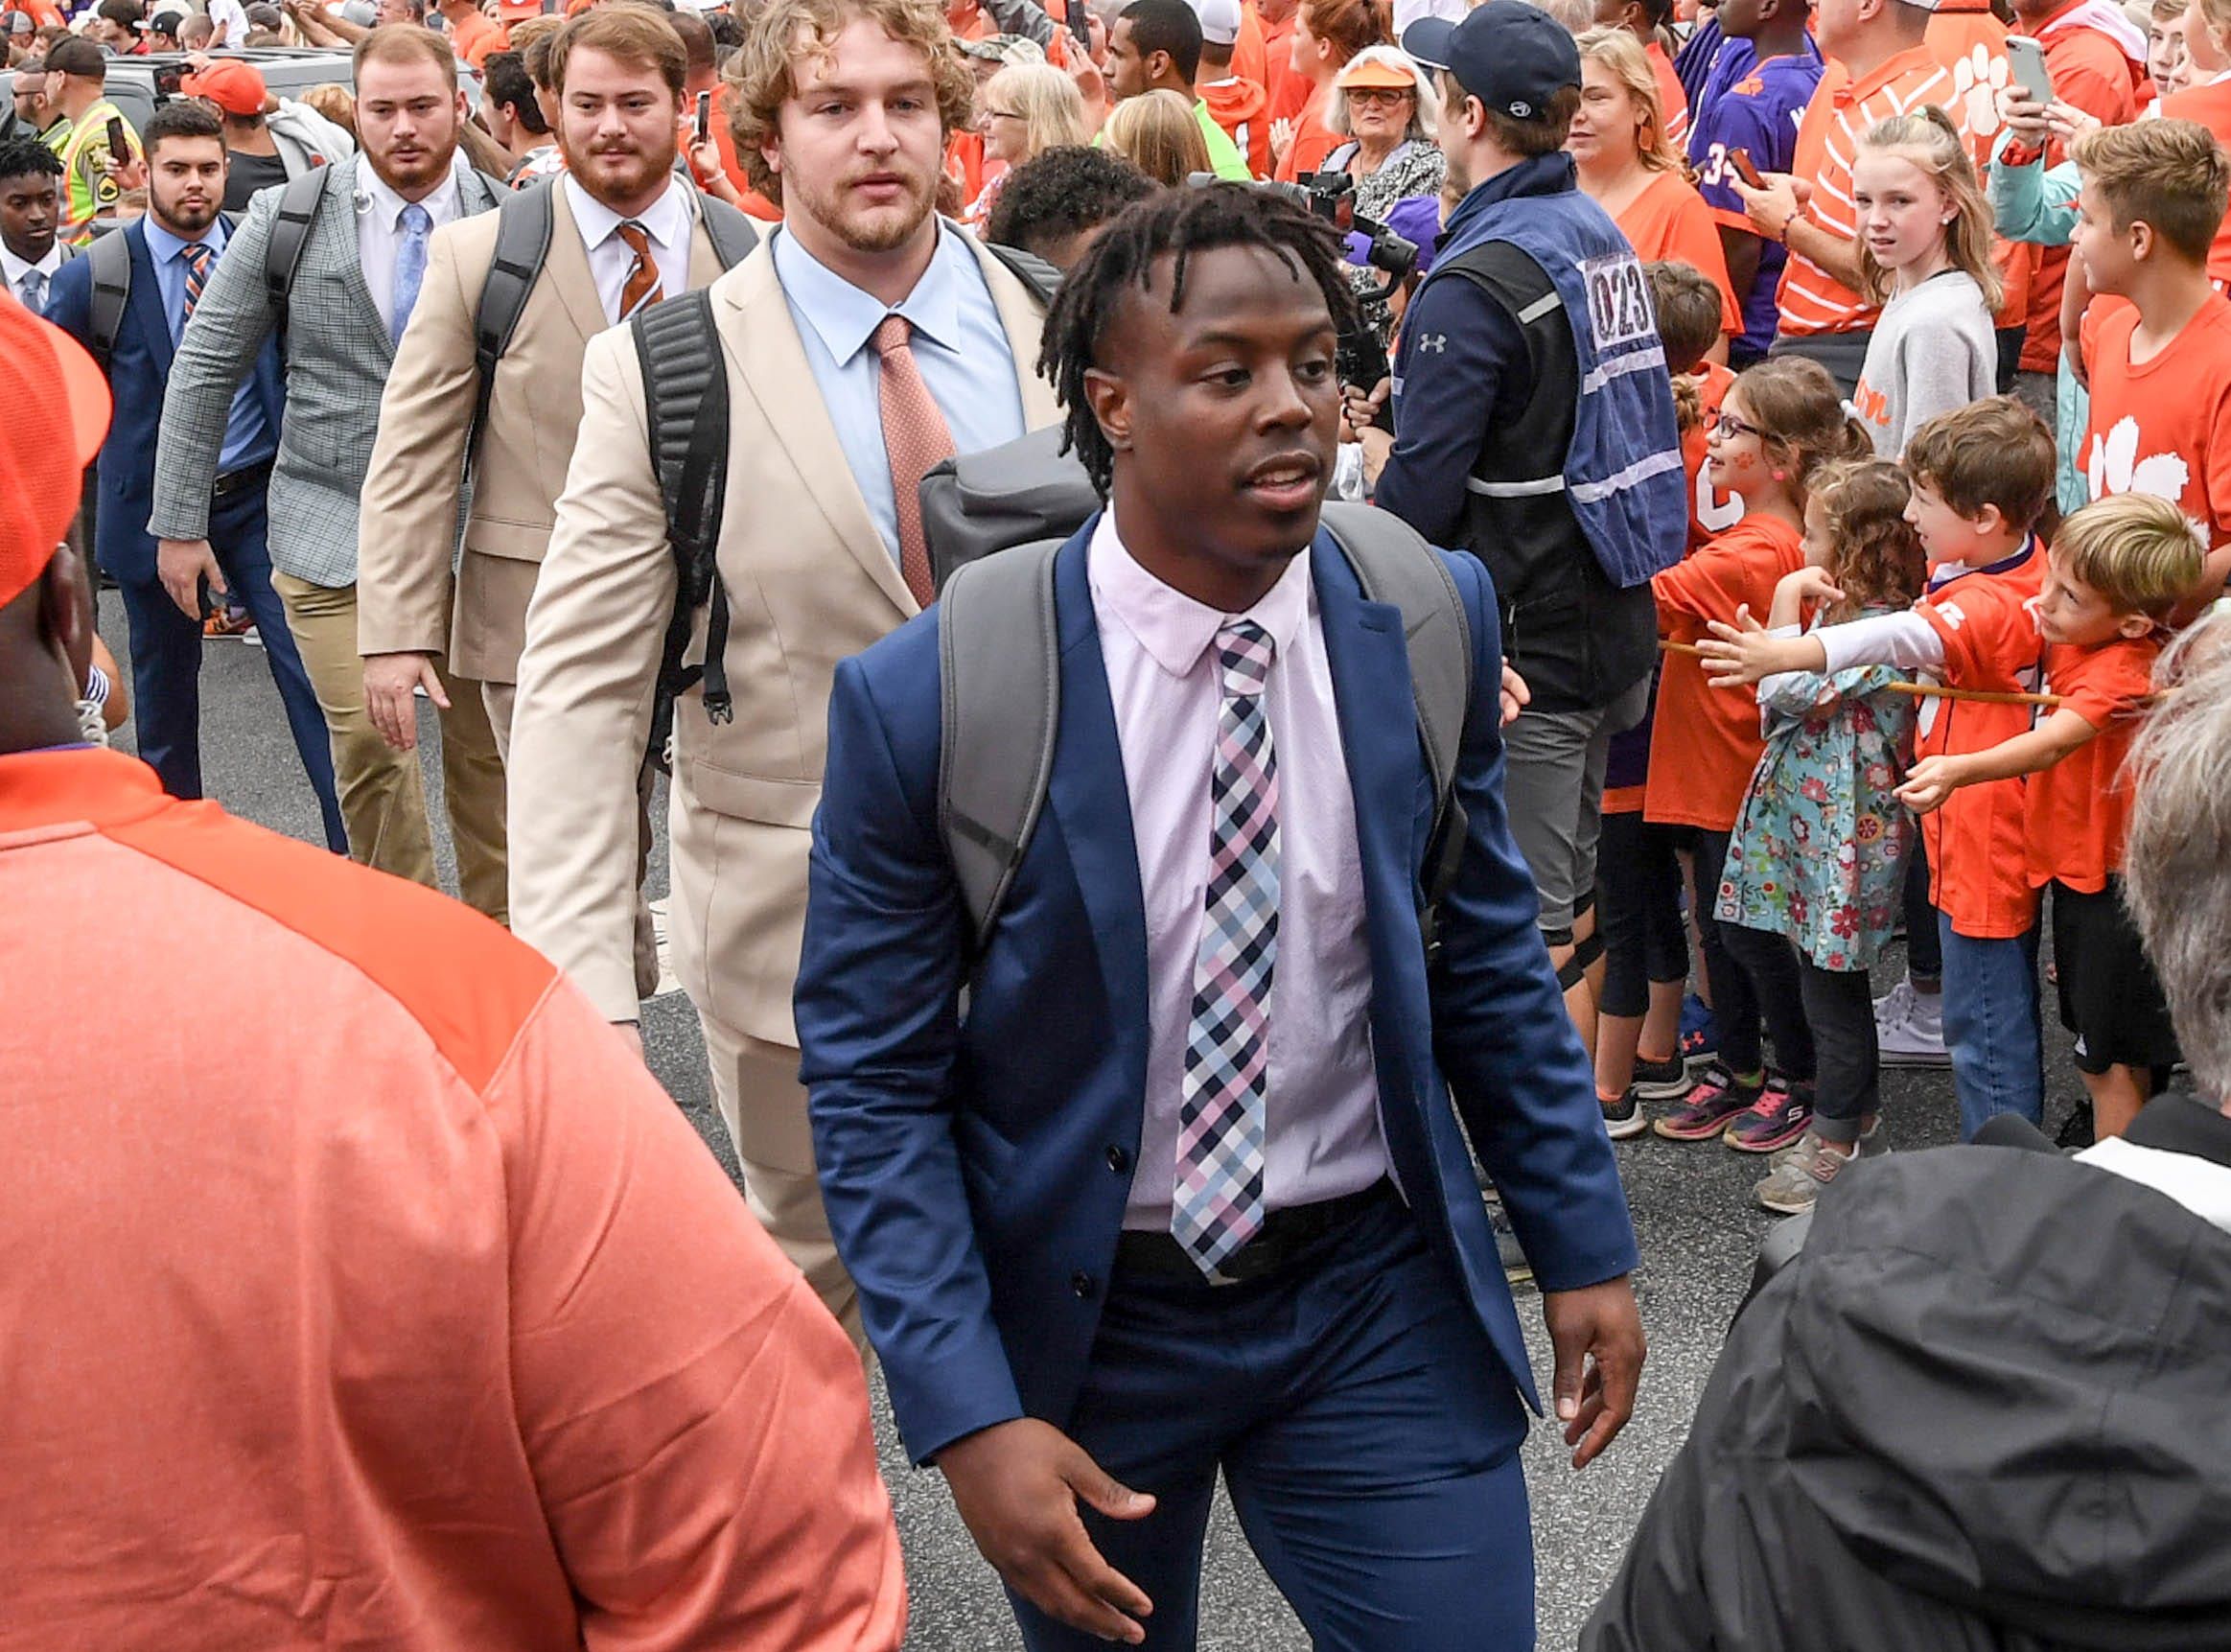 Clemson running back Travis Etienne (9) walks by fans during Tiger Walk before the game in Memorial Stadium on Saturday, October 20, 2018.